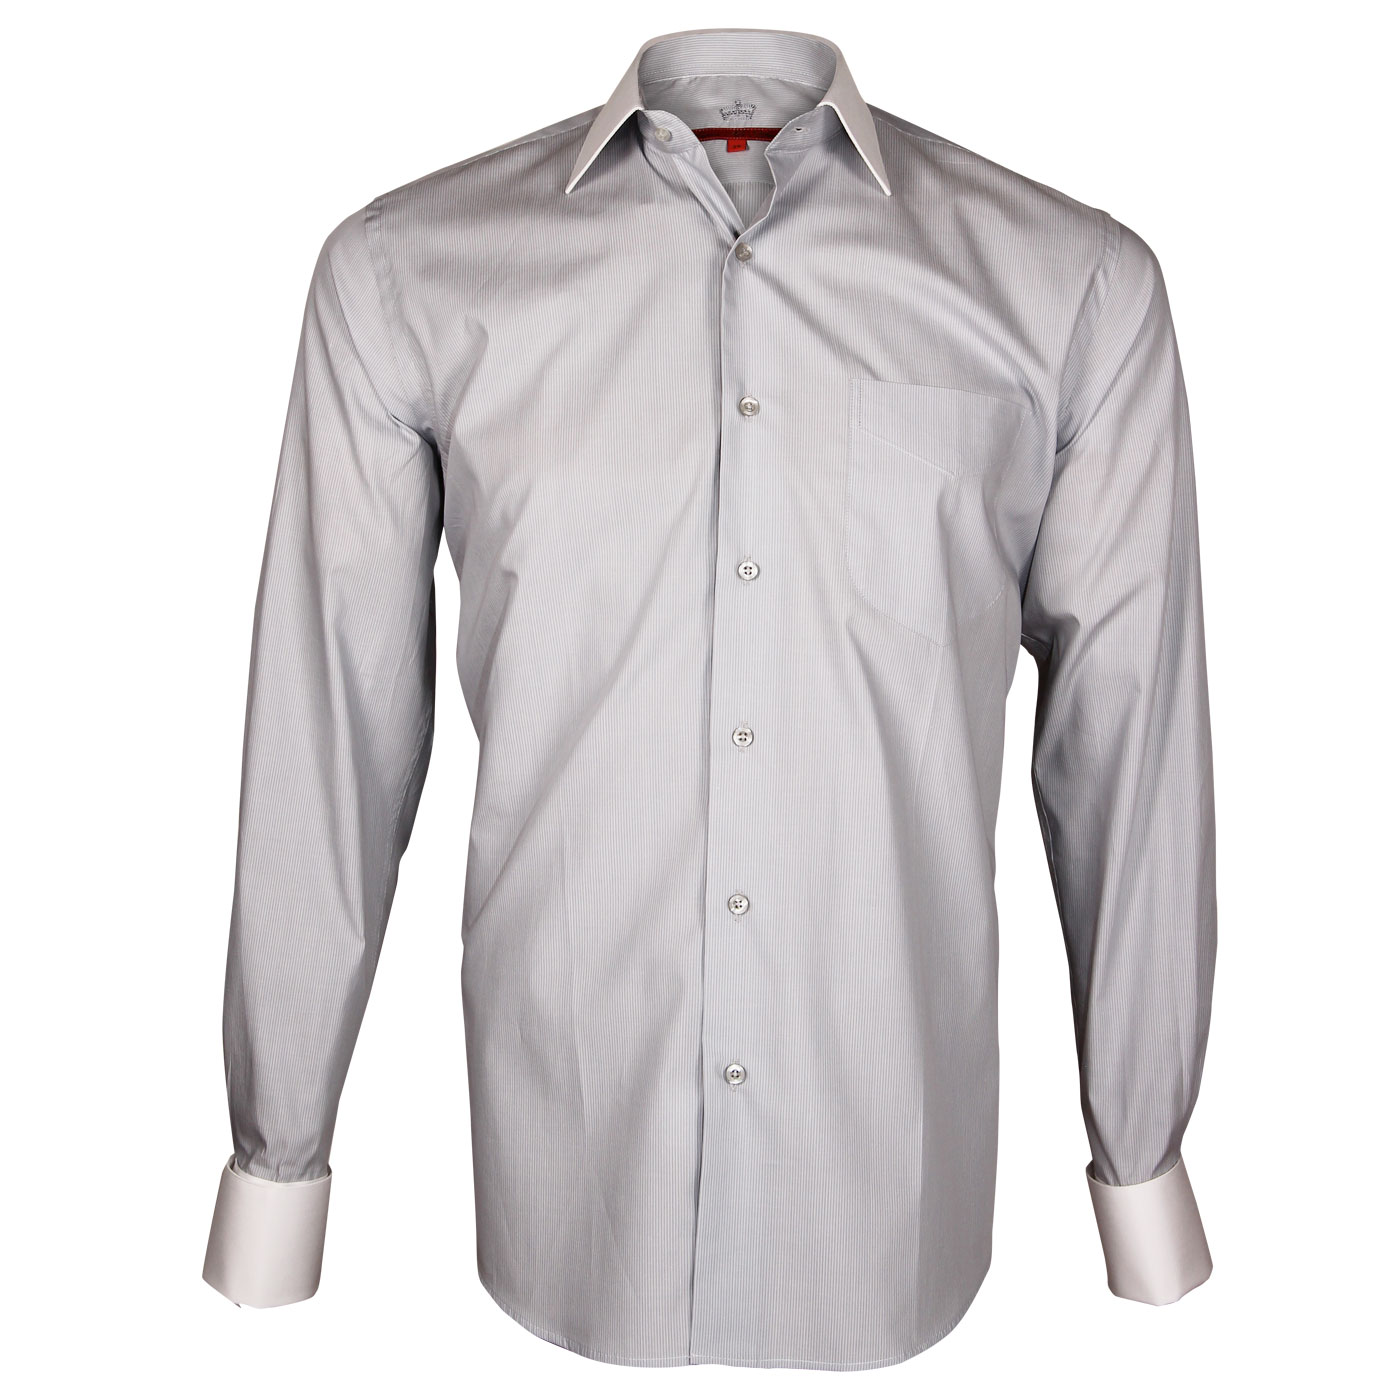 Cotton shirts for men at webmenshirts.com